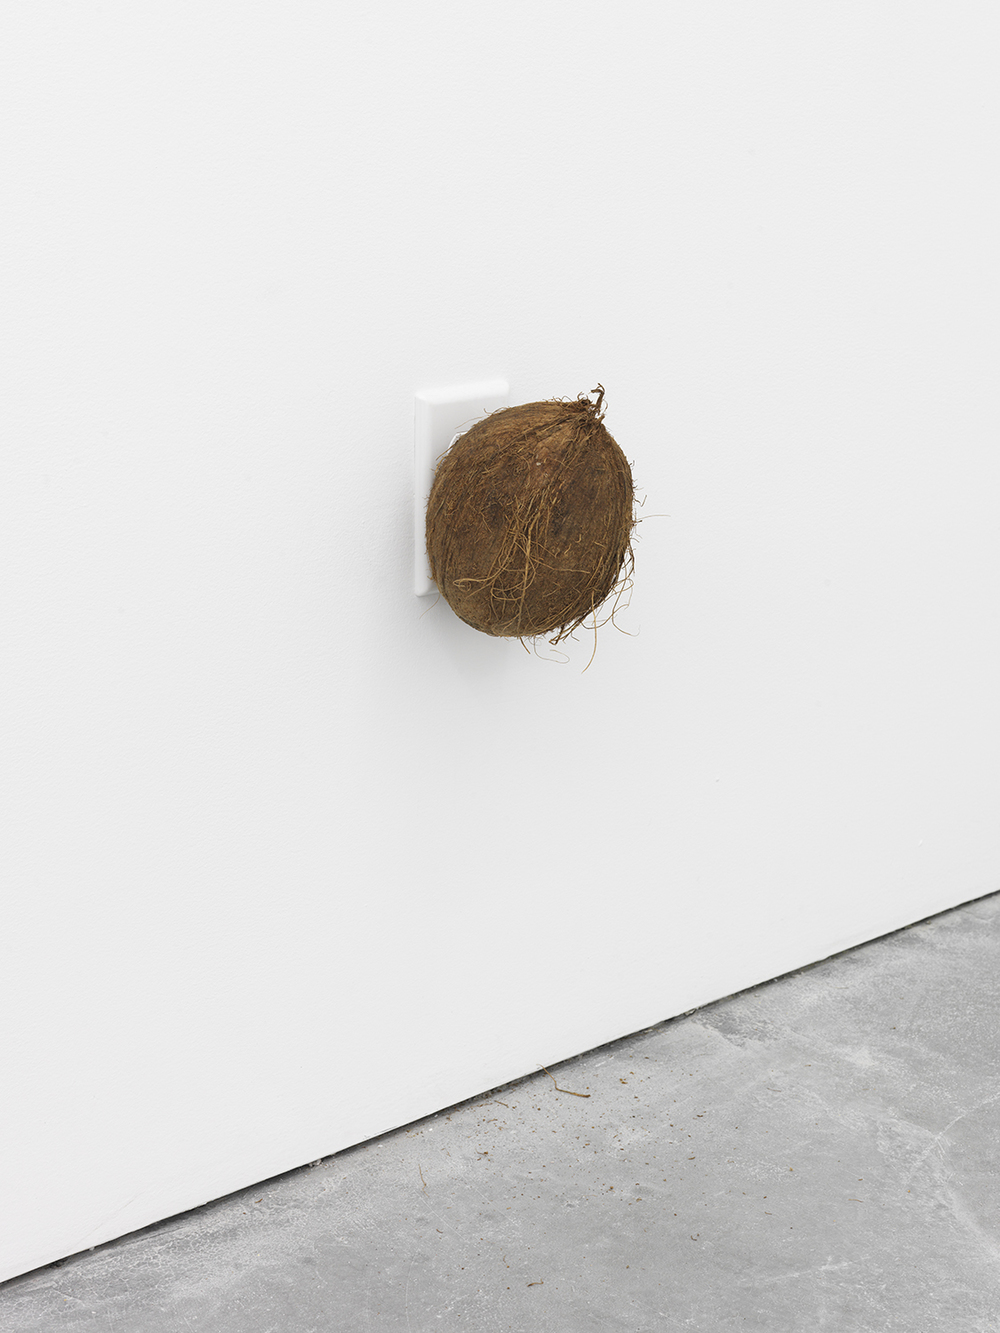 Dominic Samsworth  Thinking on our Backs , 2015 Coconut, air freshener and scent 6 x 4 inches